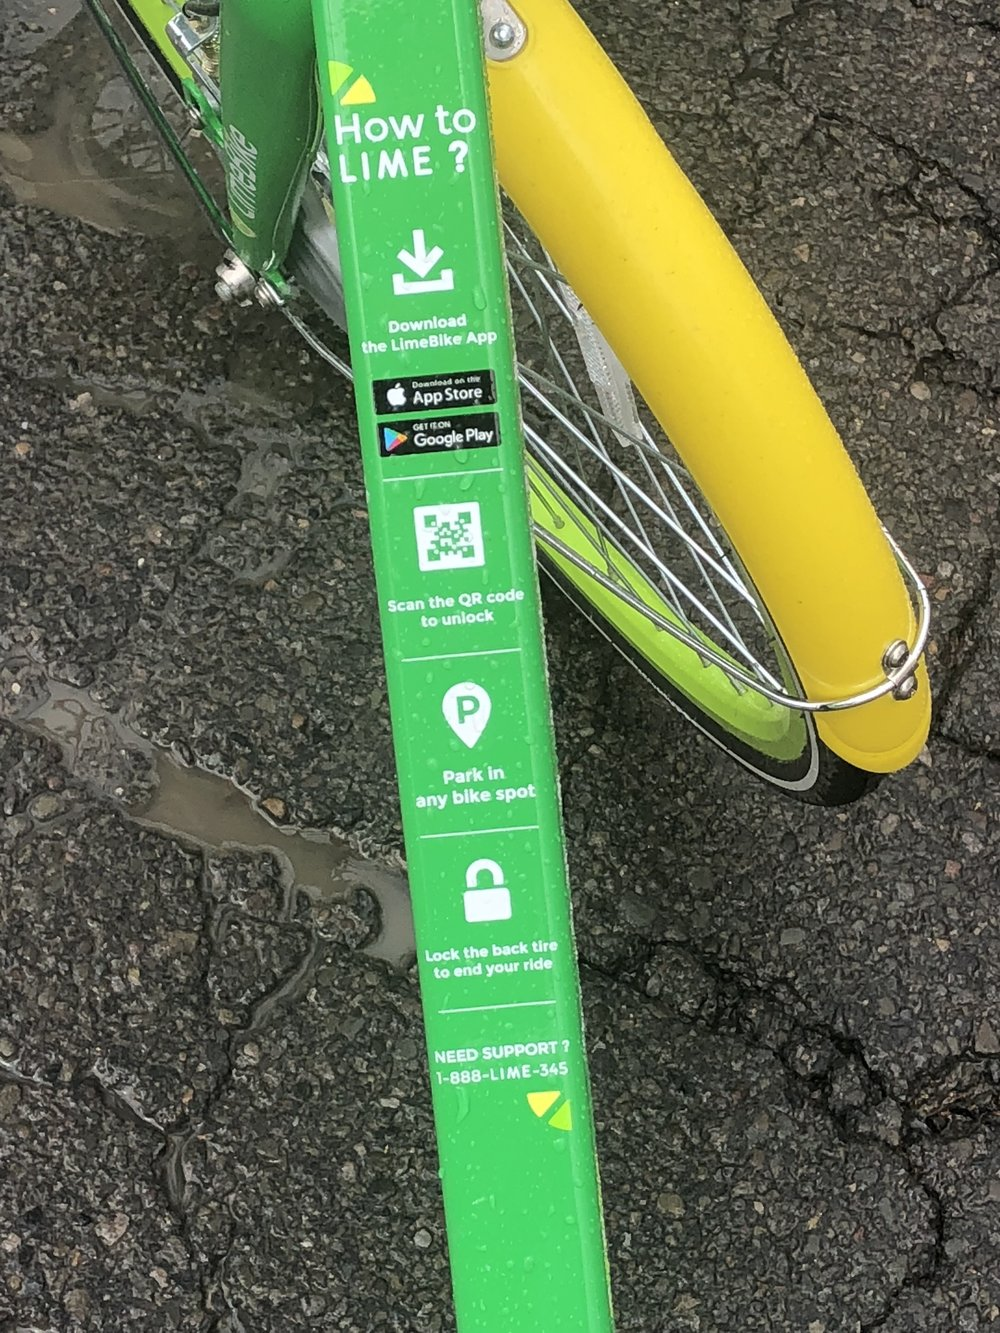 The steps to use a LimeBike are not only straight-forward, they are printed on the bikes themselves!  (Photo: Maggie McAden)